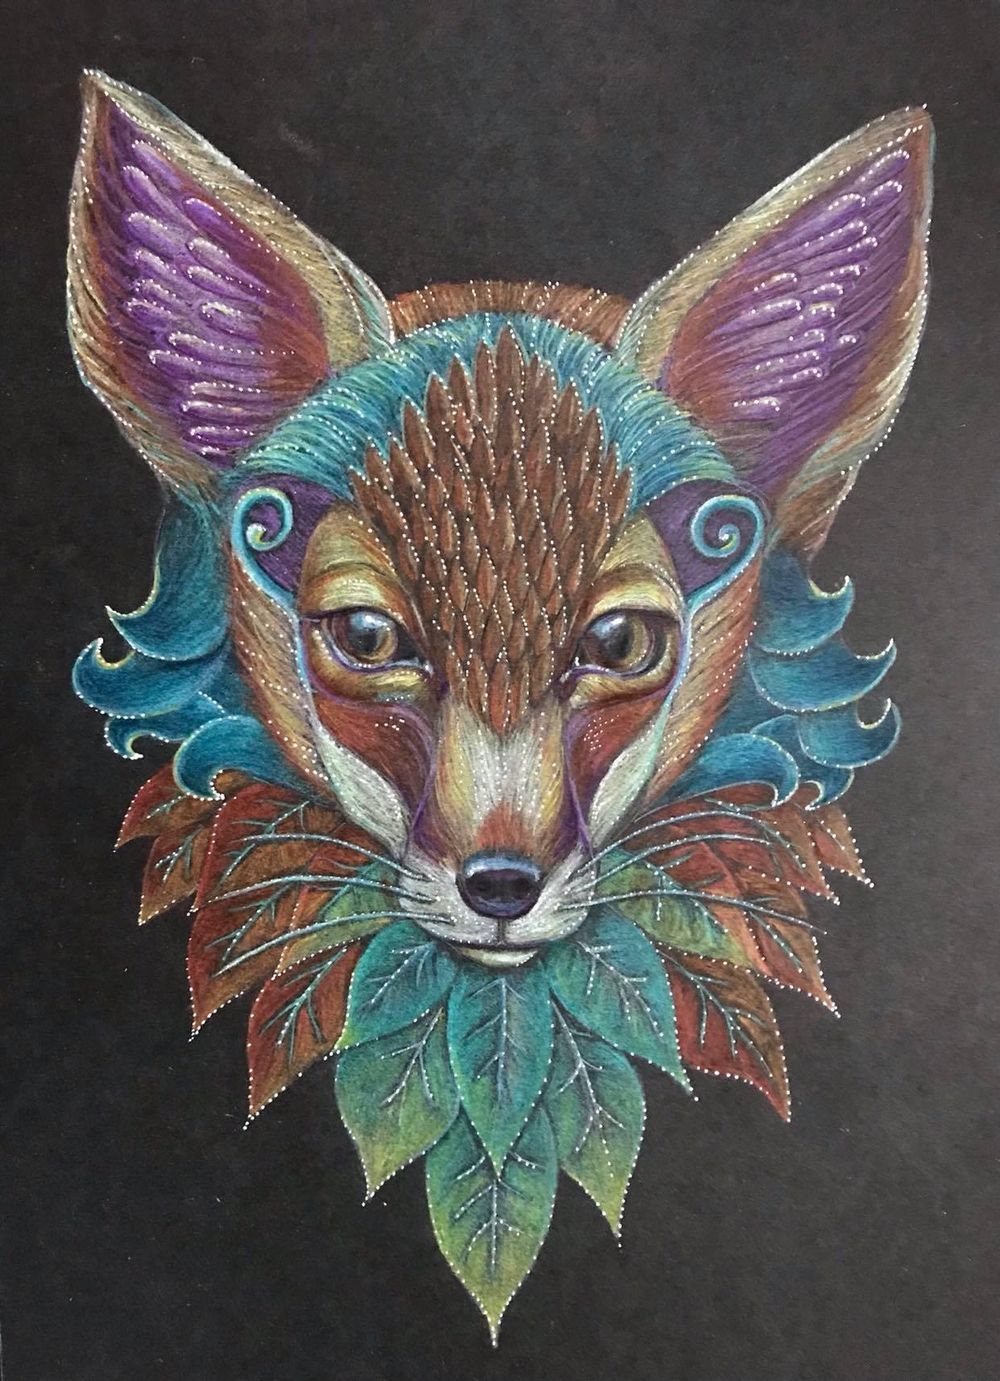 Little colourful fox - image 1 - student project